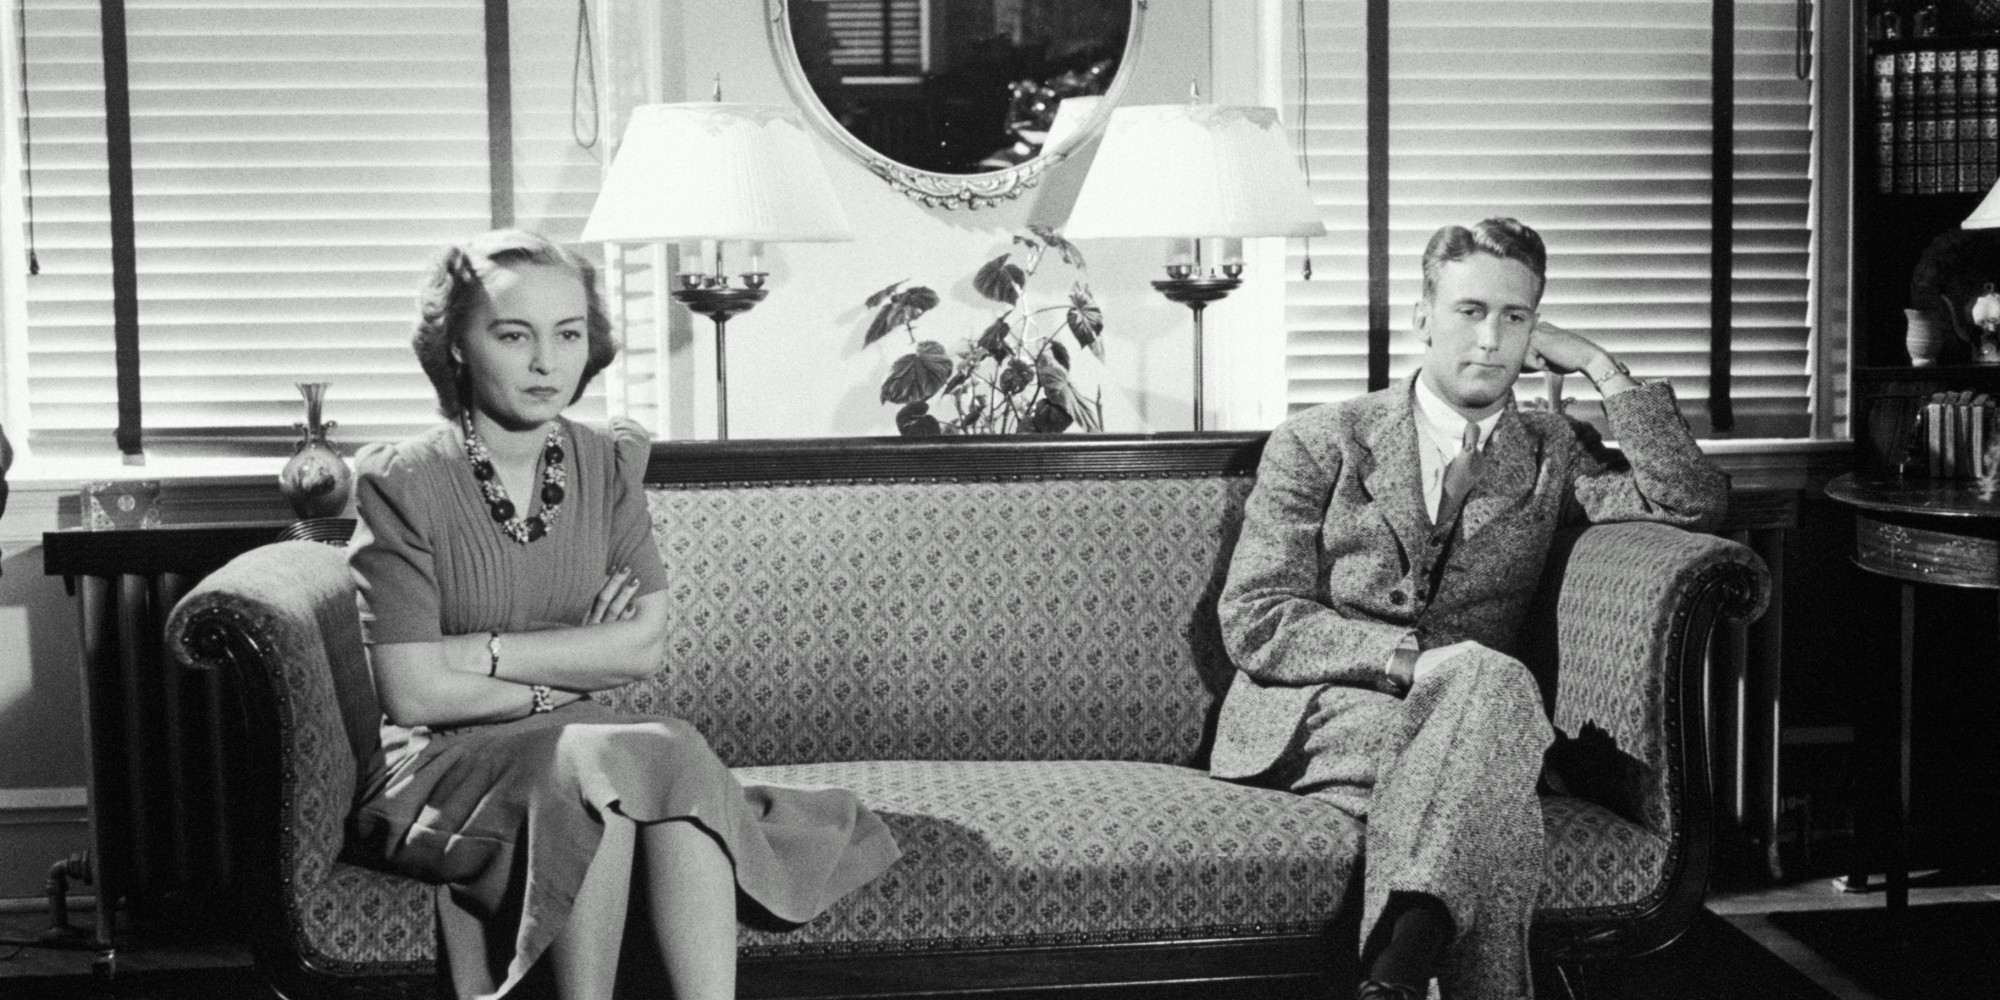 MAN AND WOMAN ON COUCH, OPPOSITE SIDES